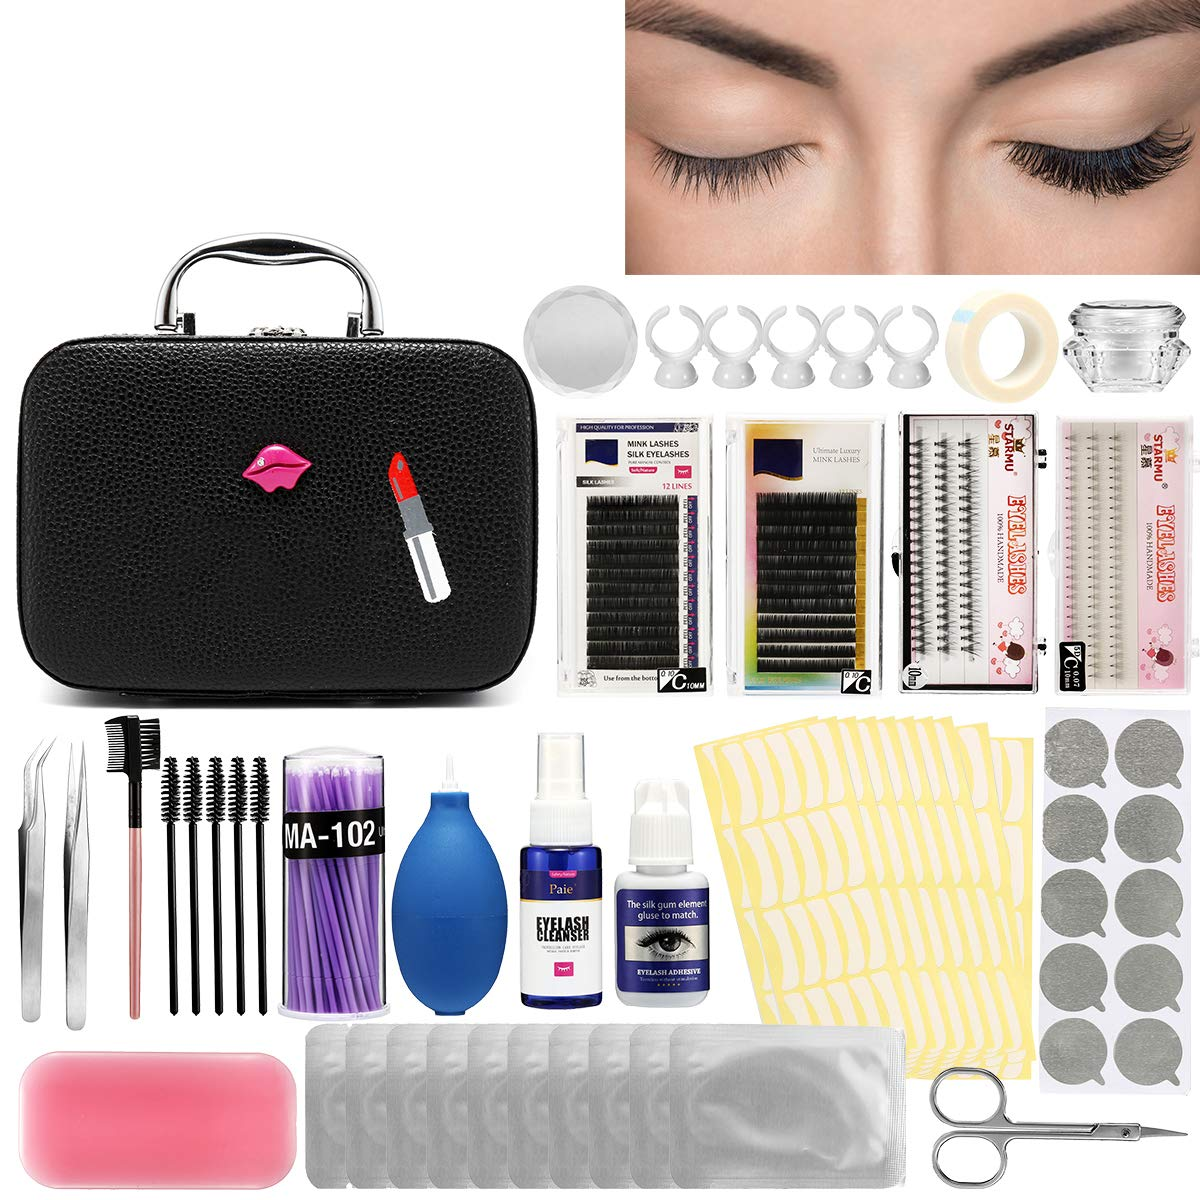 Luckyfine Pro 22pcs Eyelash Extension Kits False Lashes Tool Curl Glue With Cosmetic Case For Makeup Practice Eye Lashes Graft, Lash Starter Kit, Eyelashes Extension Practice Set